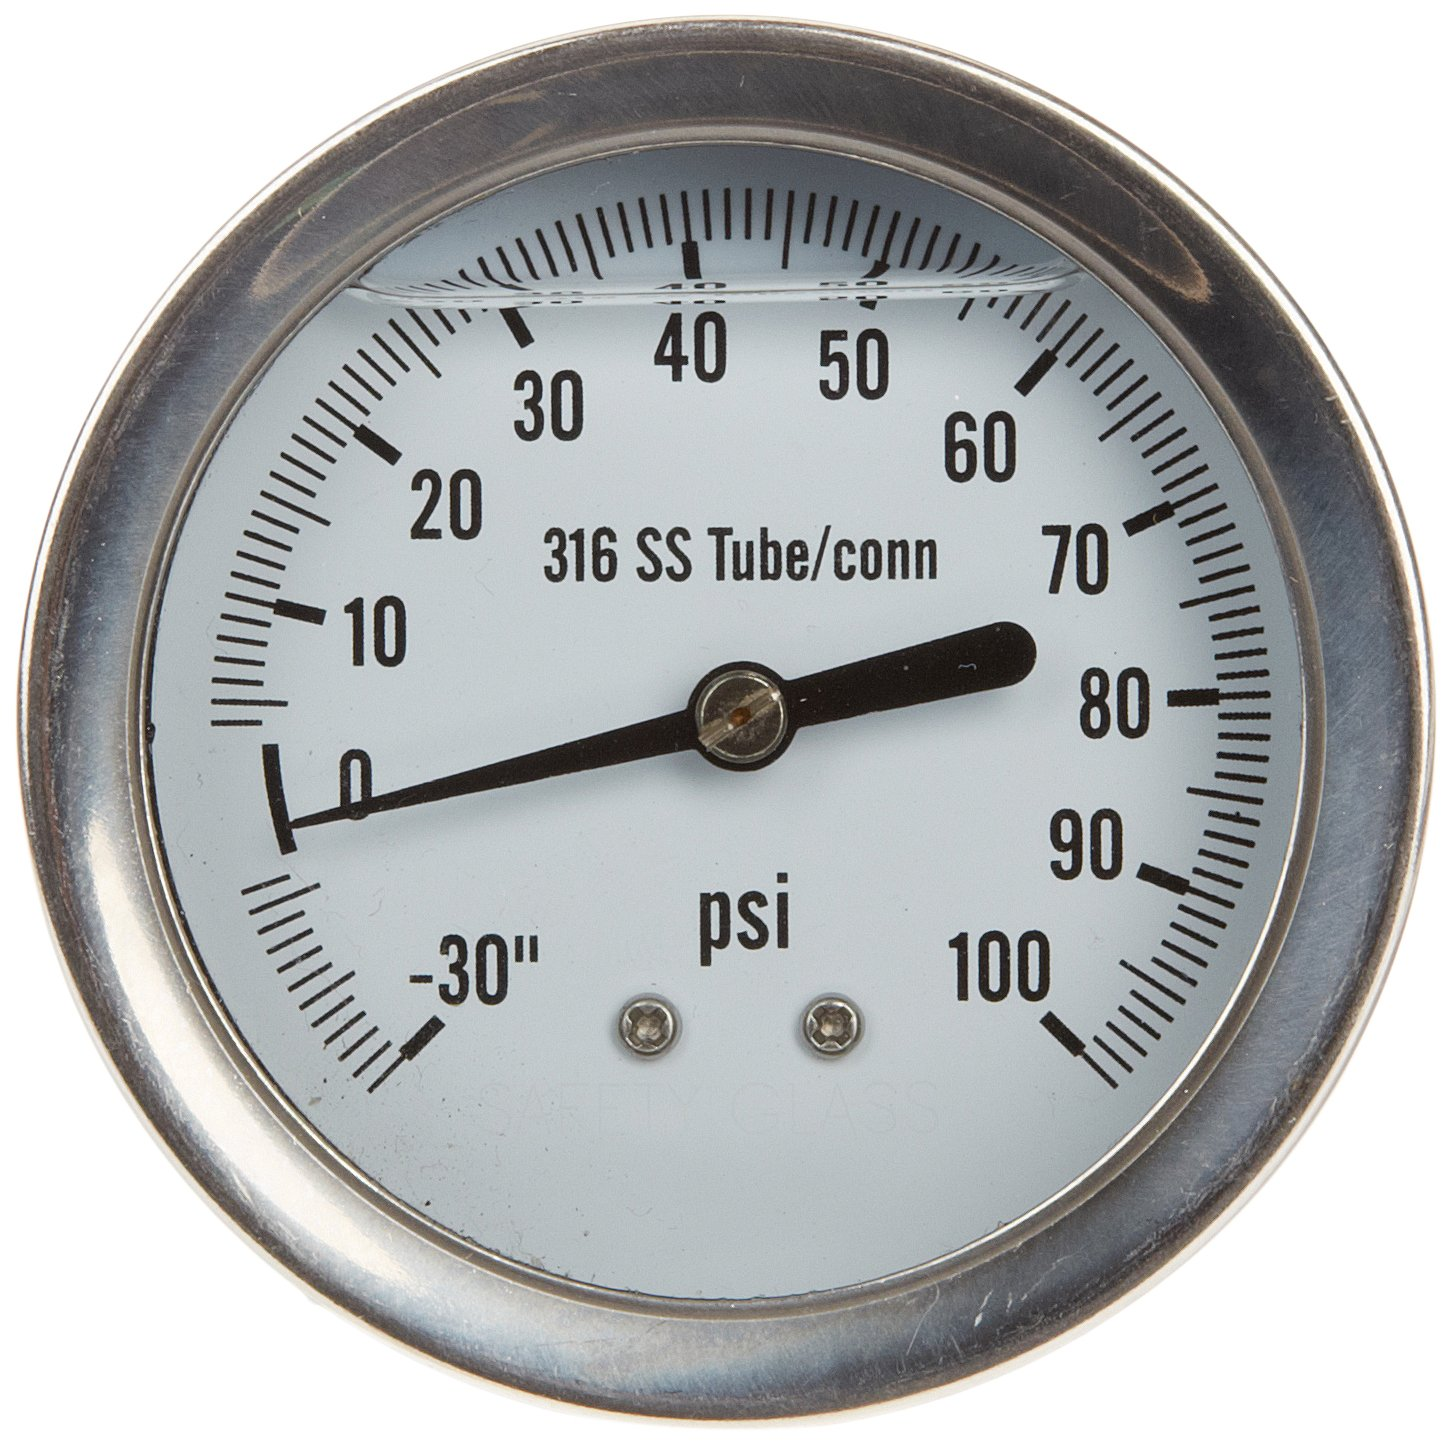 PIC Gauge 312L-254CE-SIL Stainless Steel Case Silicone Filled 1/4 Lower Back Mount Pressure Gauge 316SS Internals Welded Connection 2.5' Dial Size 30/0/100 psi Range' Precision Instrument Company